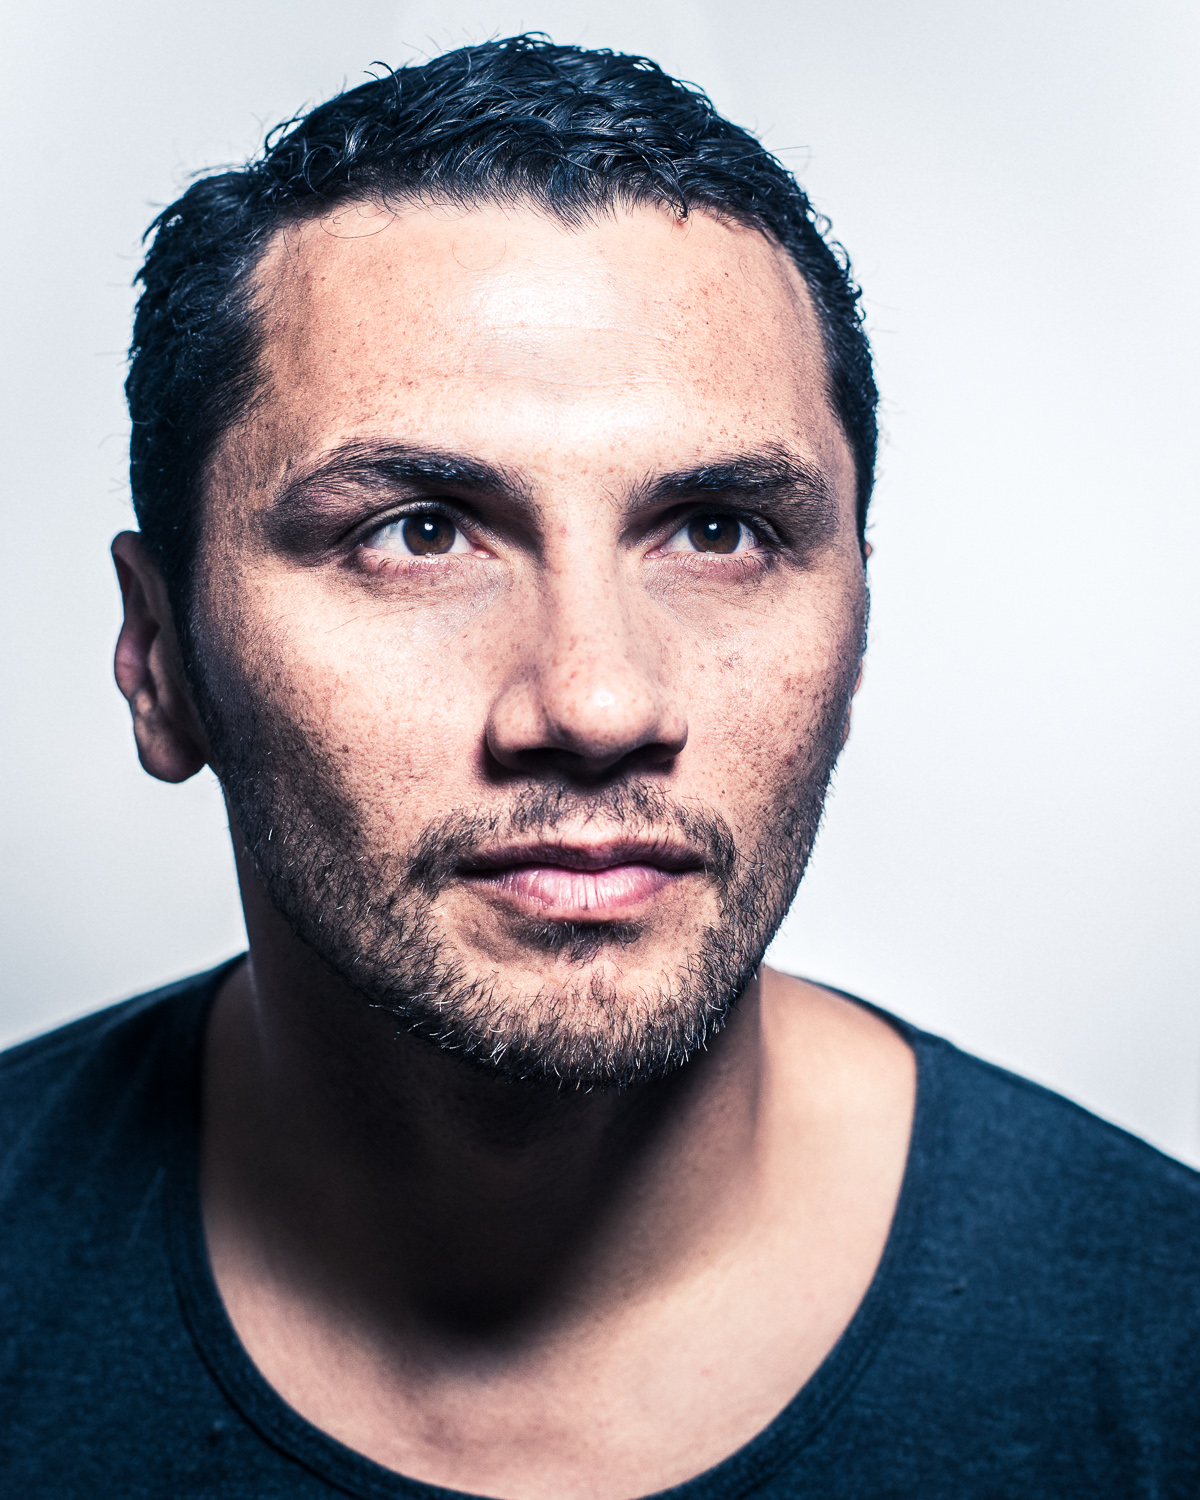 Jason Kerrison_003_photo_©2013 Steve Dykes.jpg